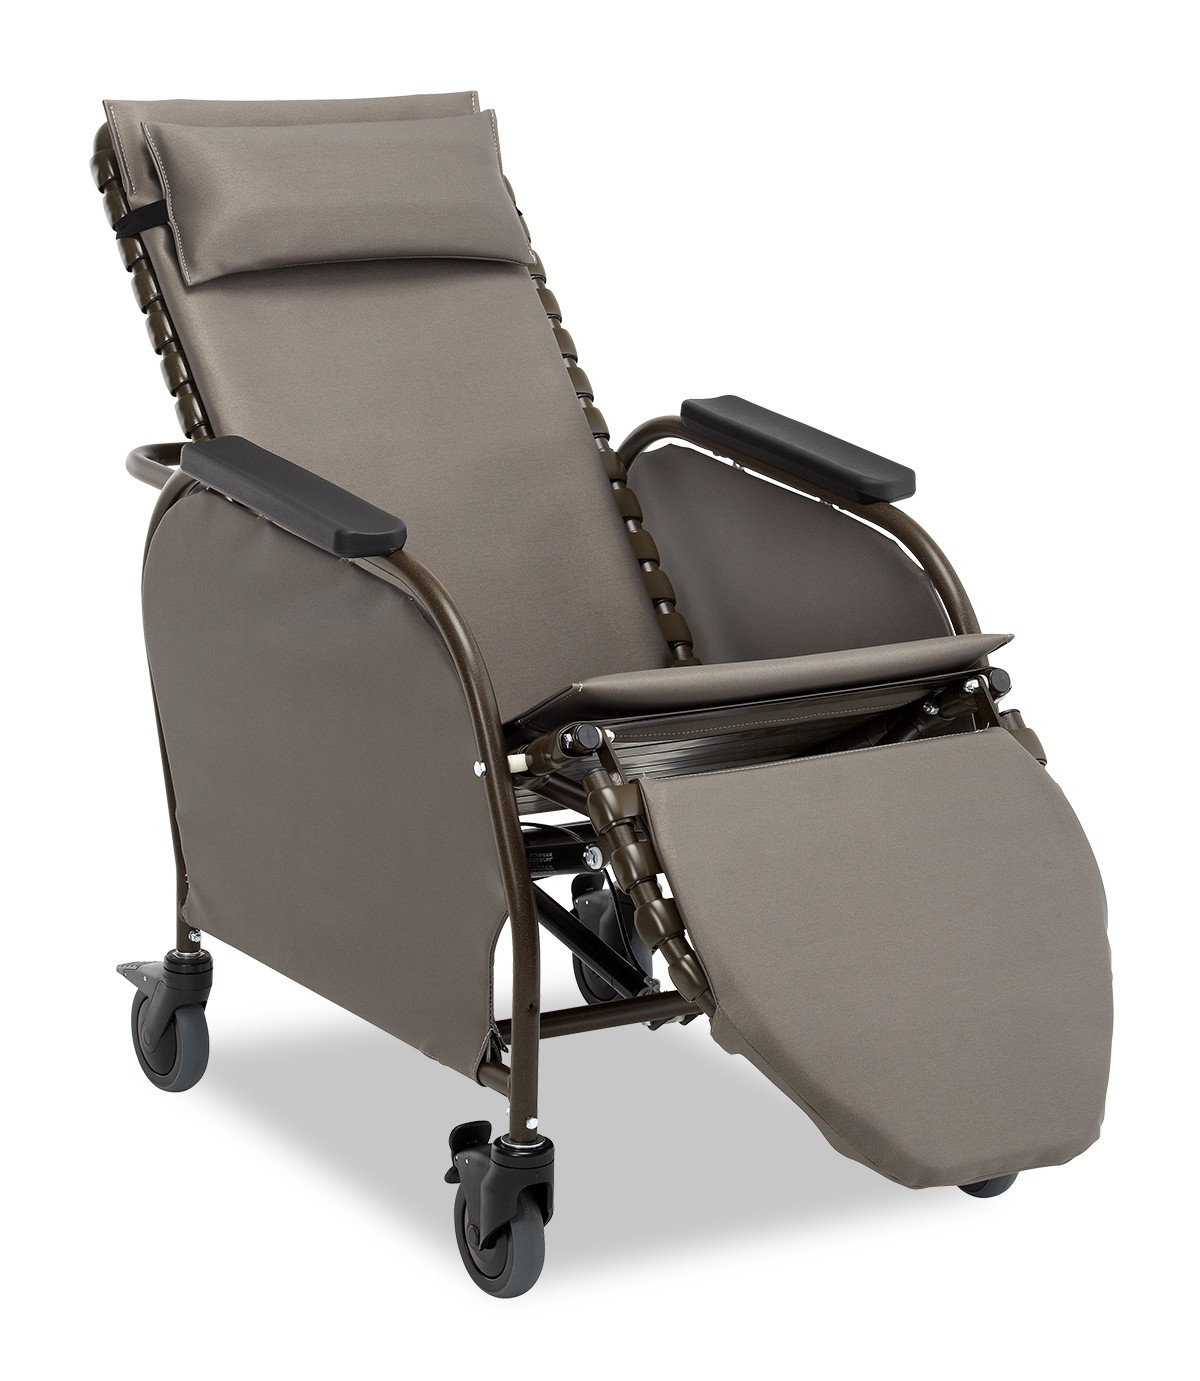 broda chair accessories card table and chairs costco lt procare medical to